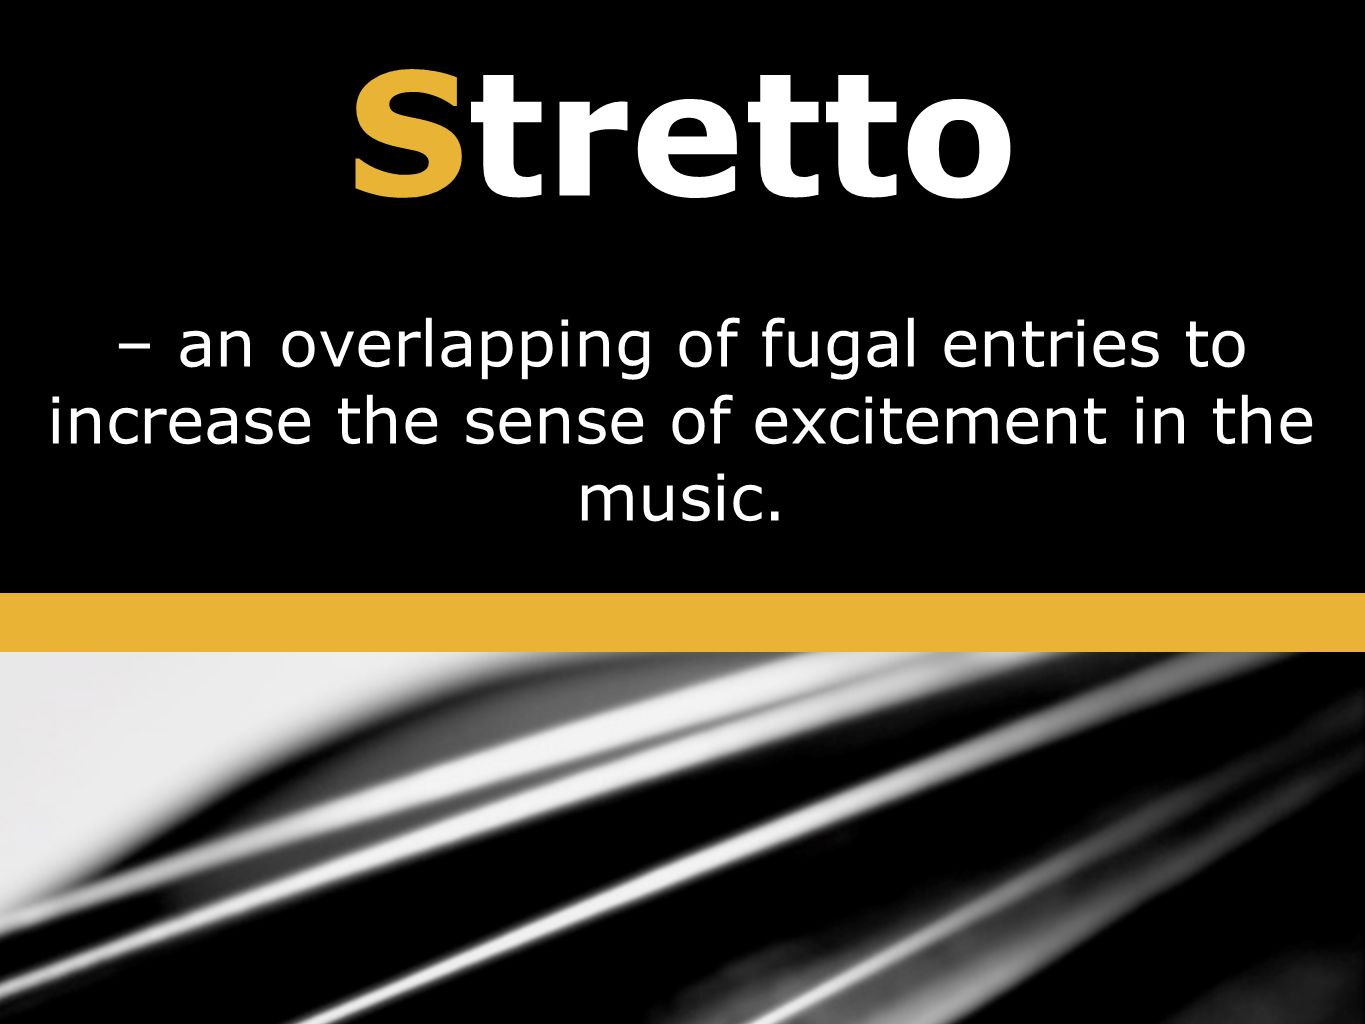 Stretto – an overlapping of fugal entries to increase the sense of excitement in the music.